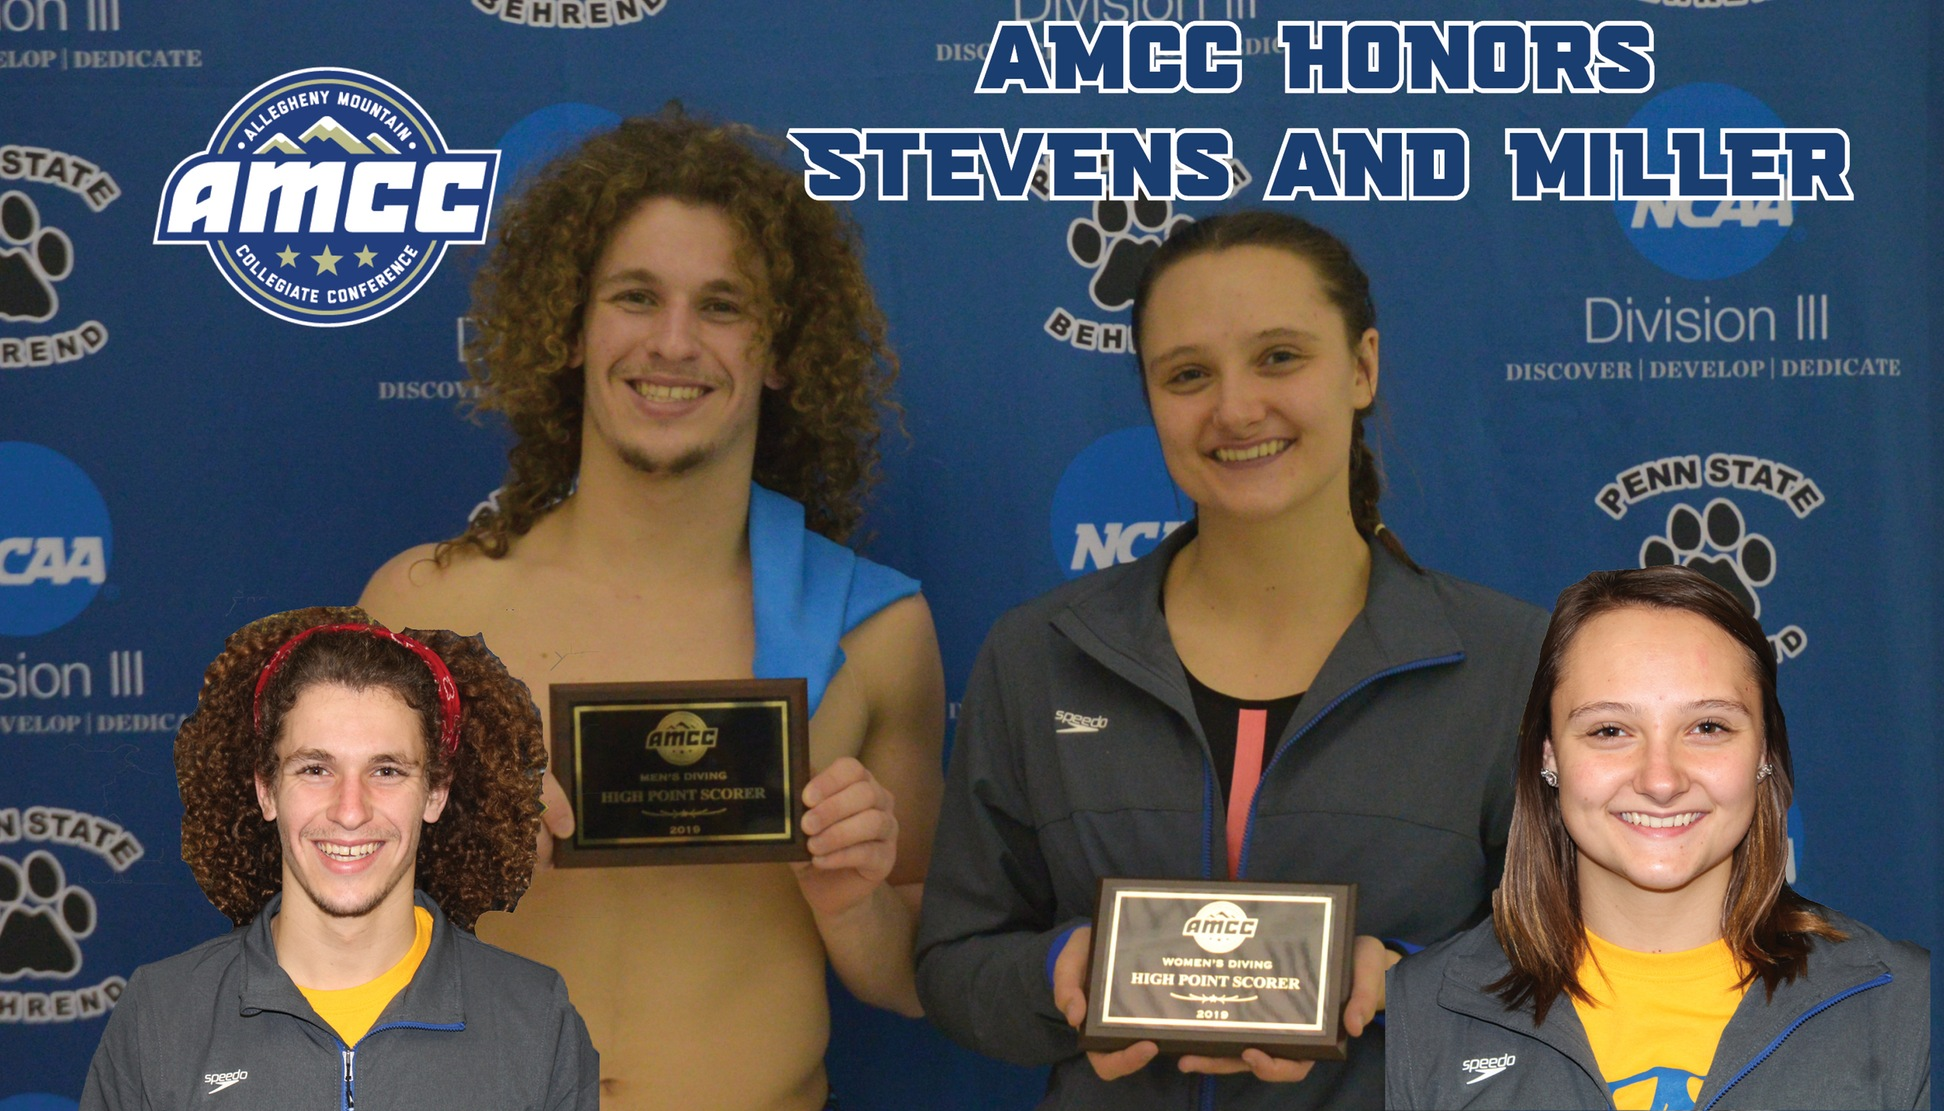 Stevens and Miller named AMCC Divers of the Week